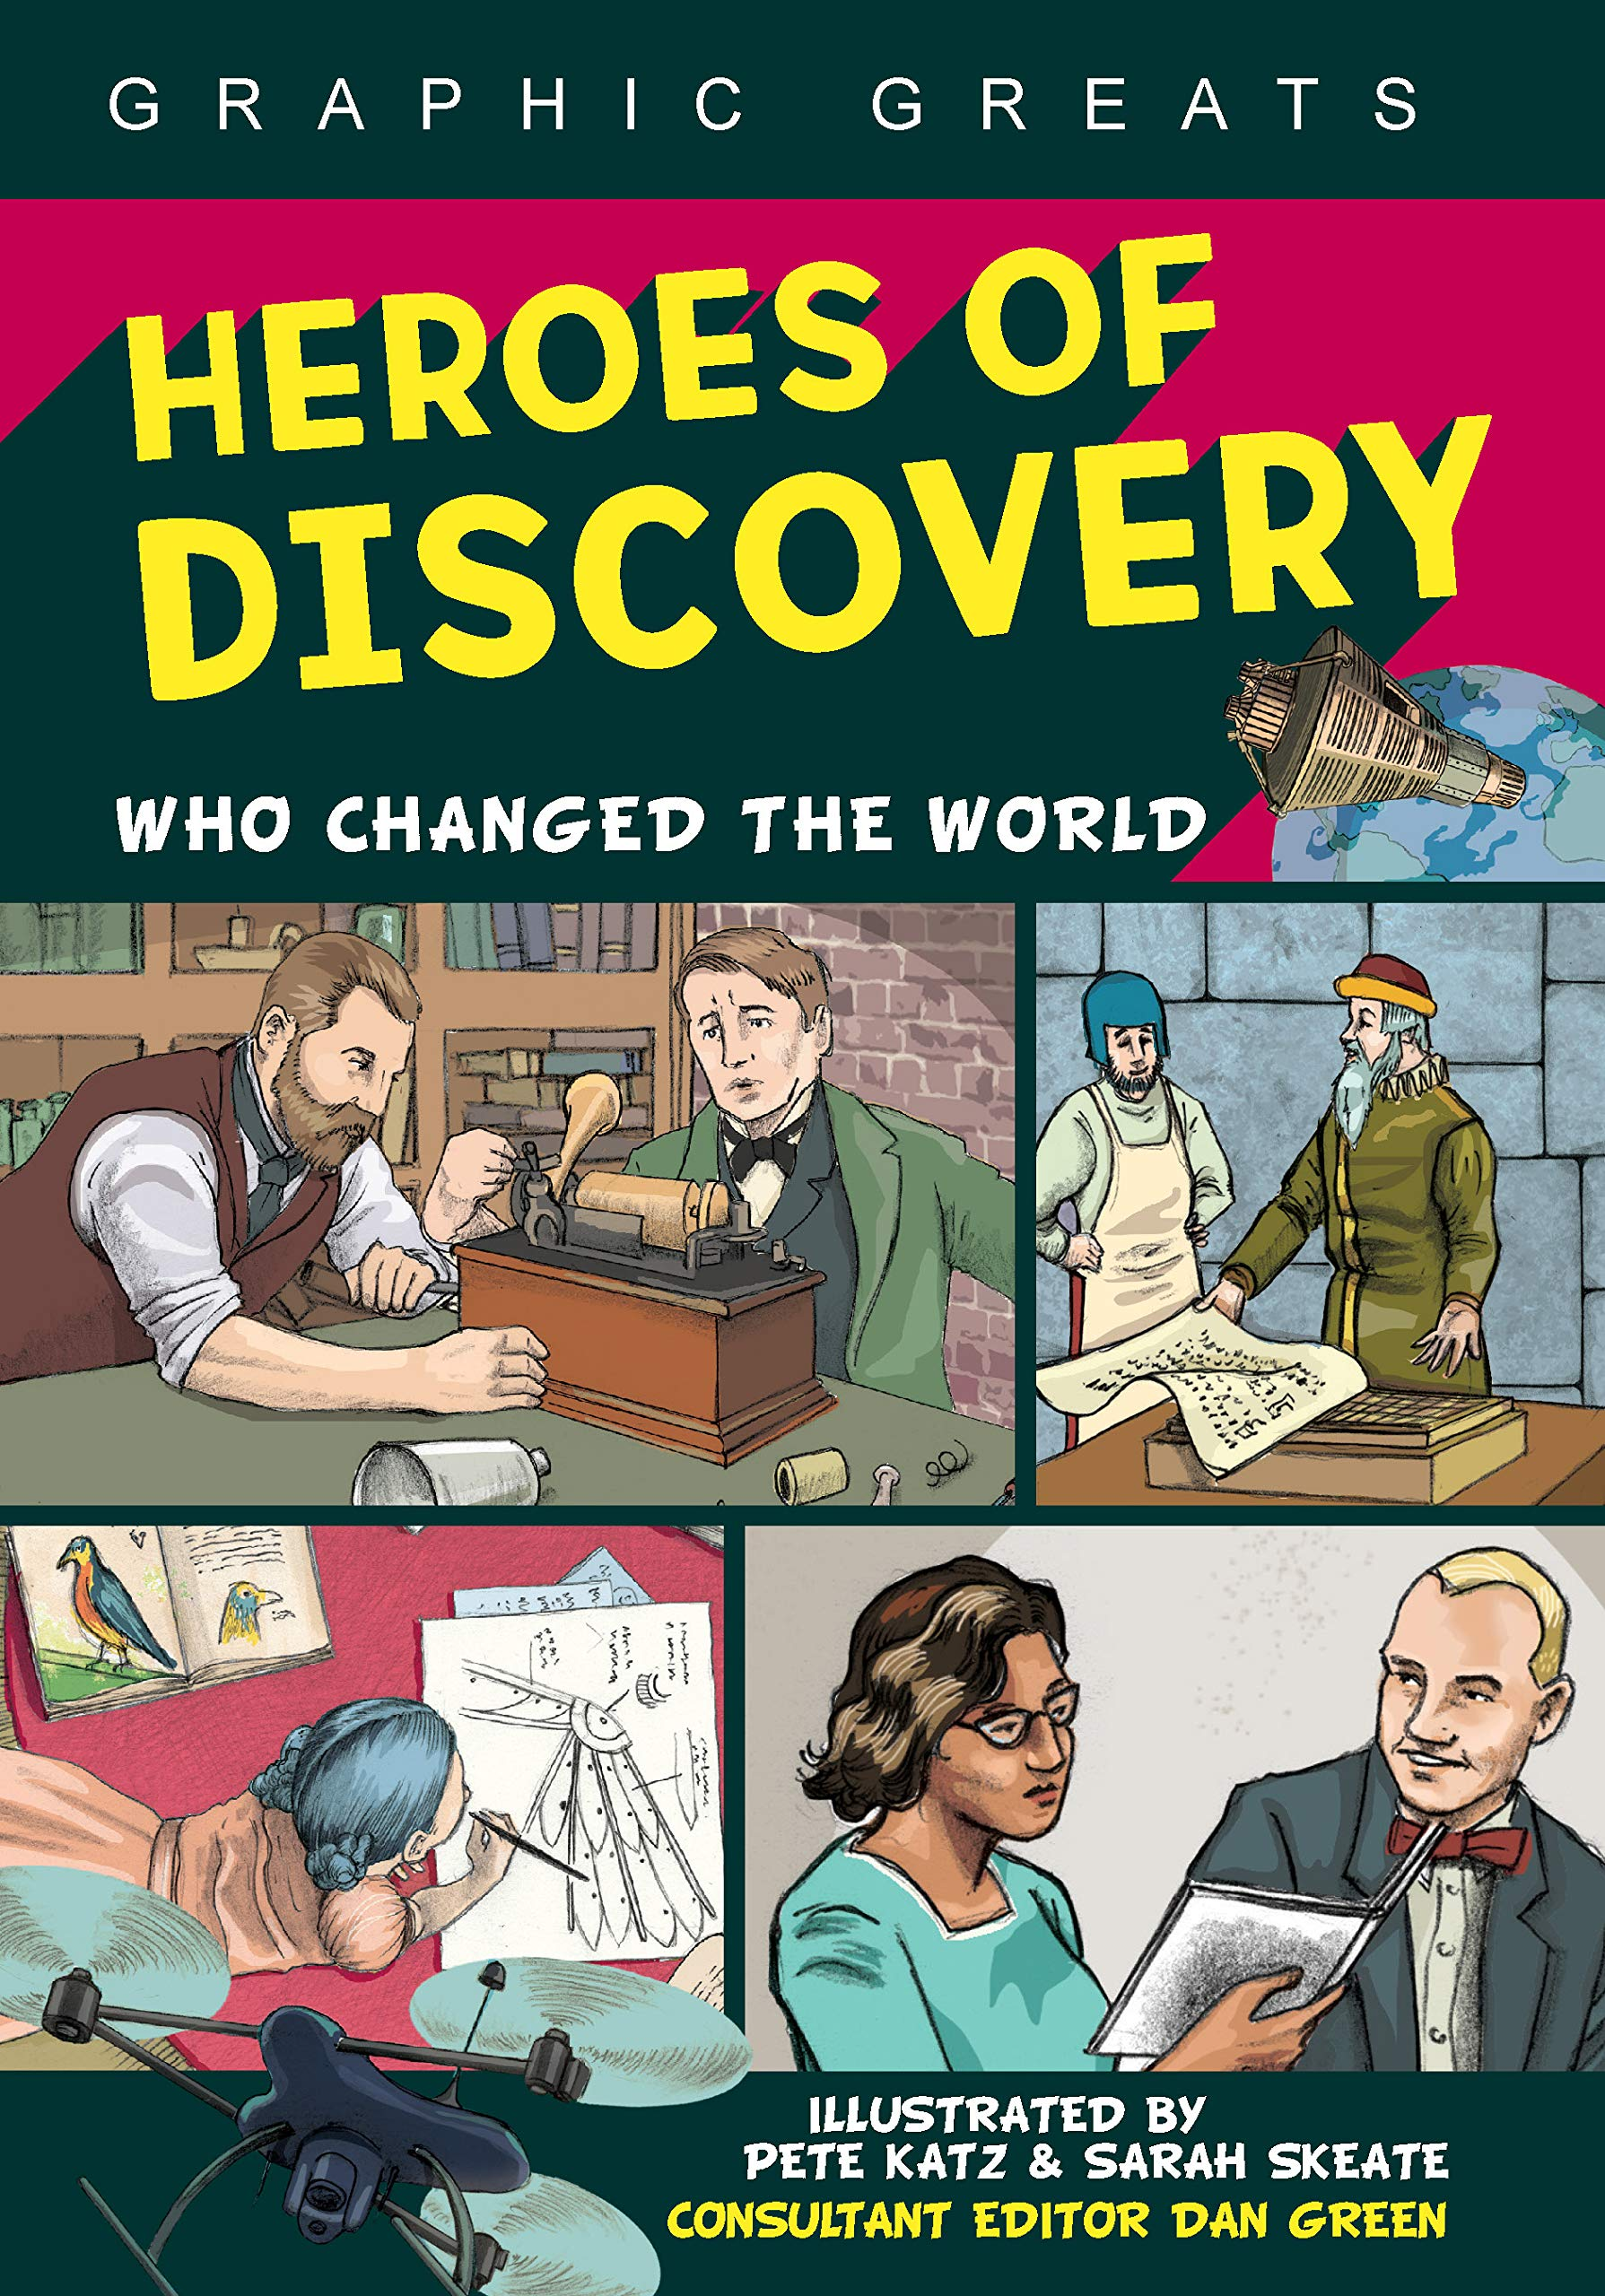 Heroes of Discovery: Who Changed the World